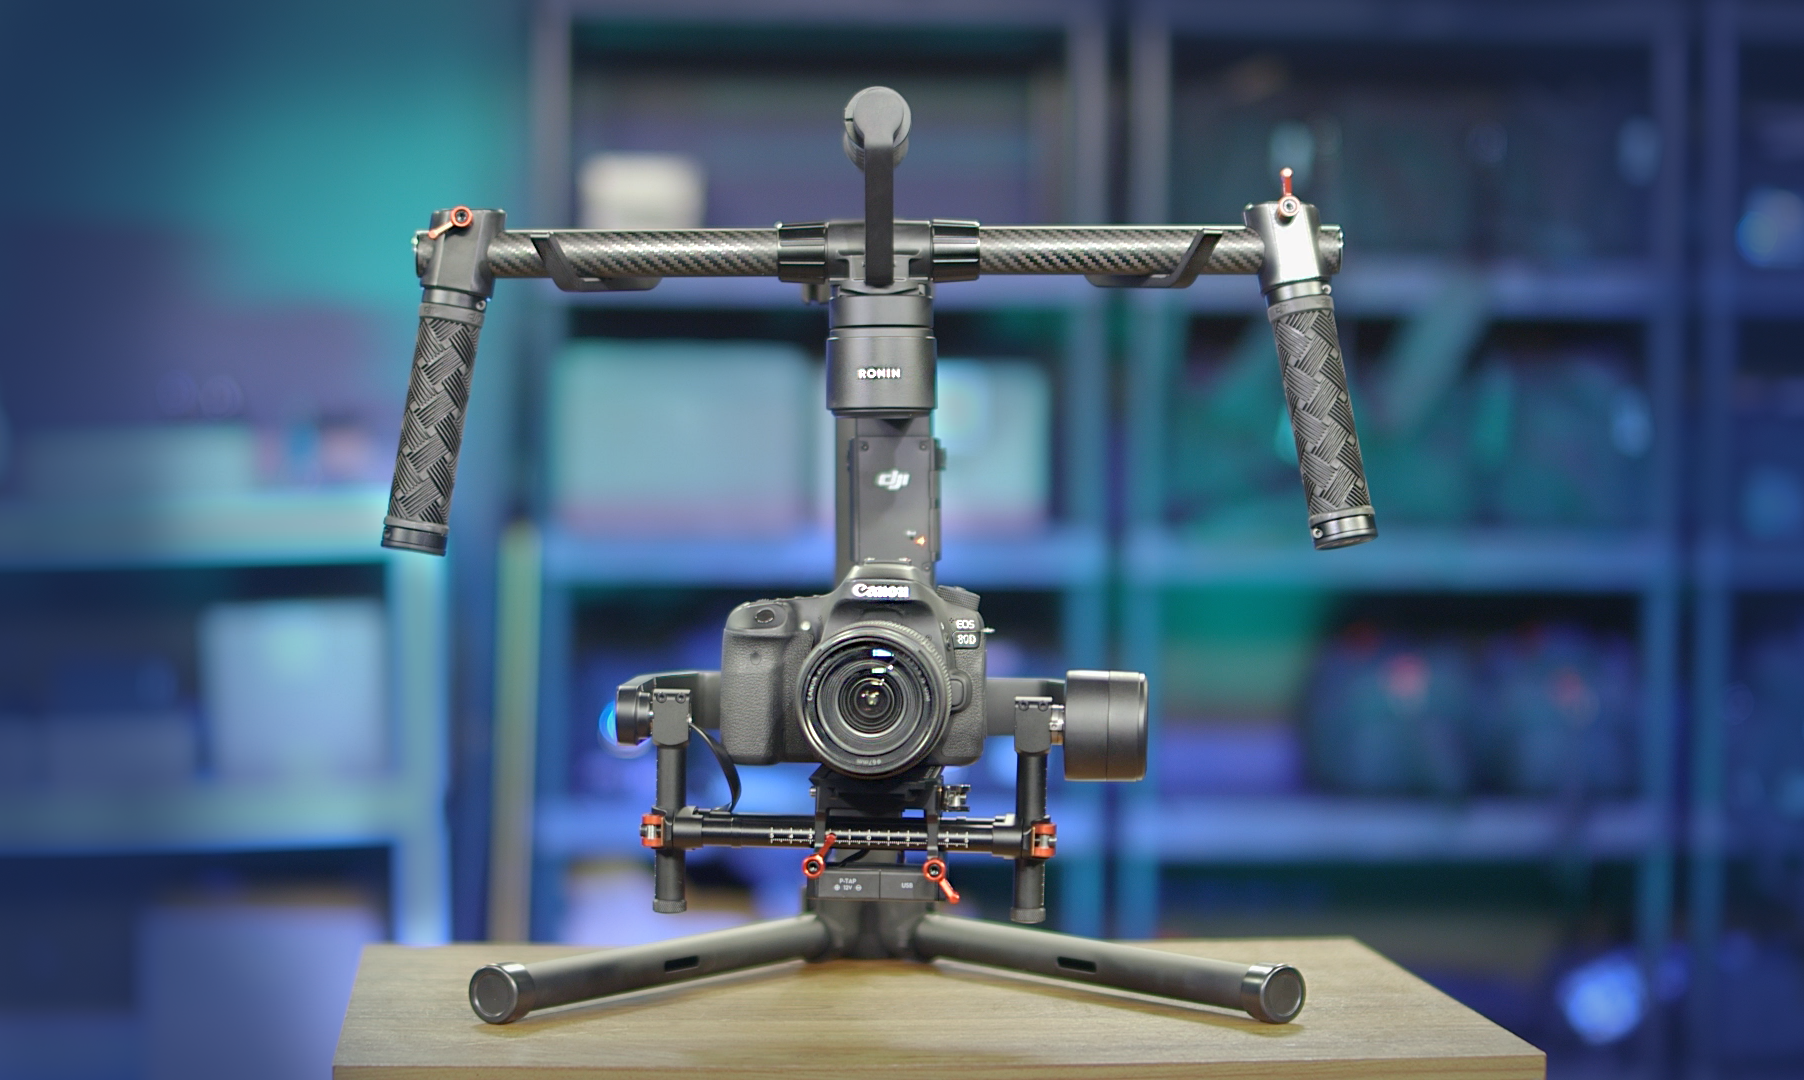 DJI Ronin M Camera Stabilizer